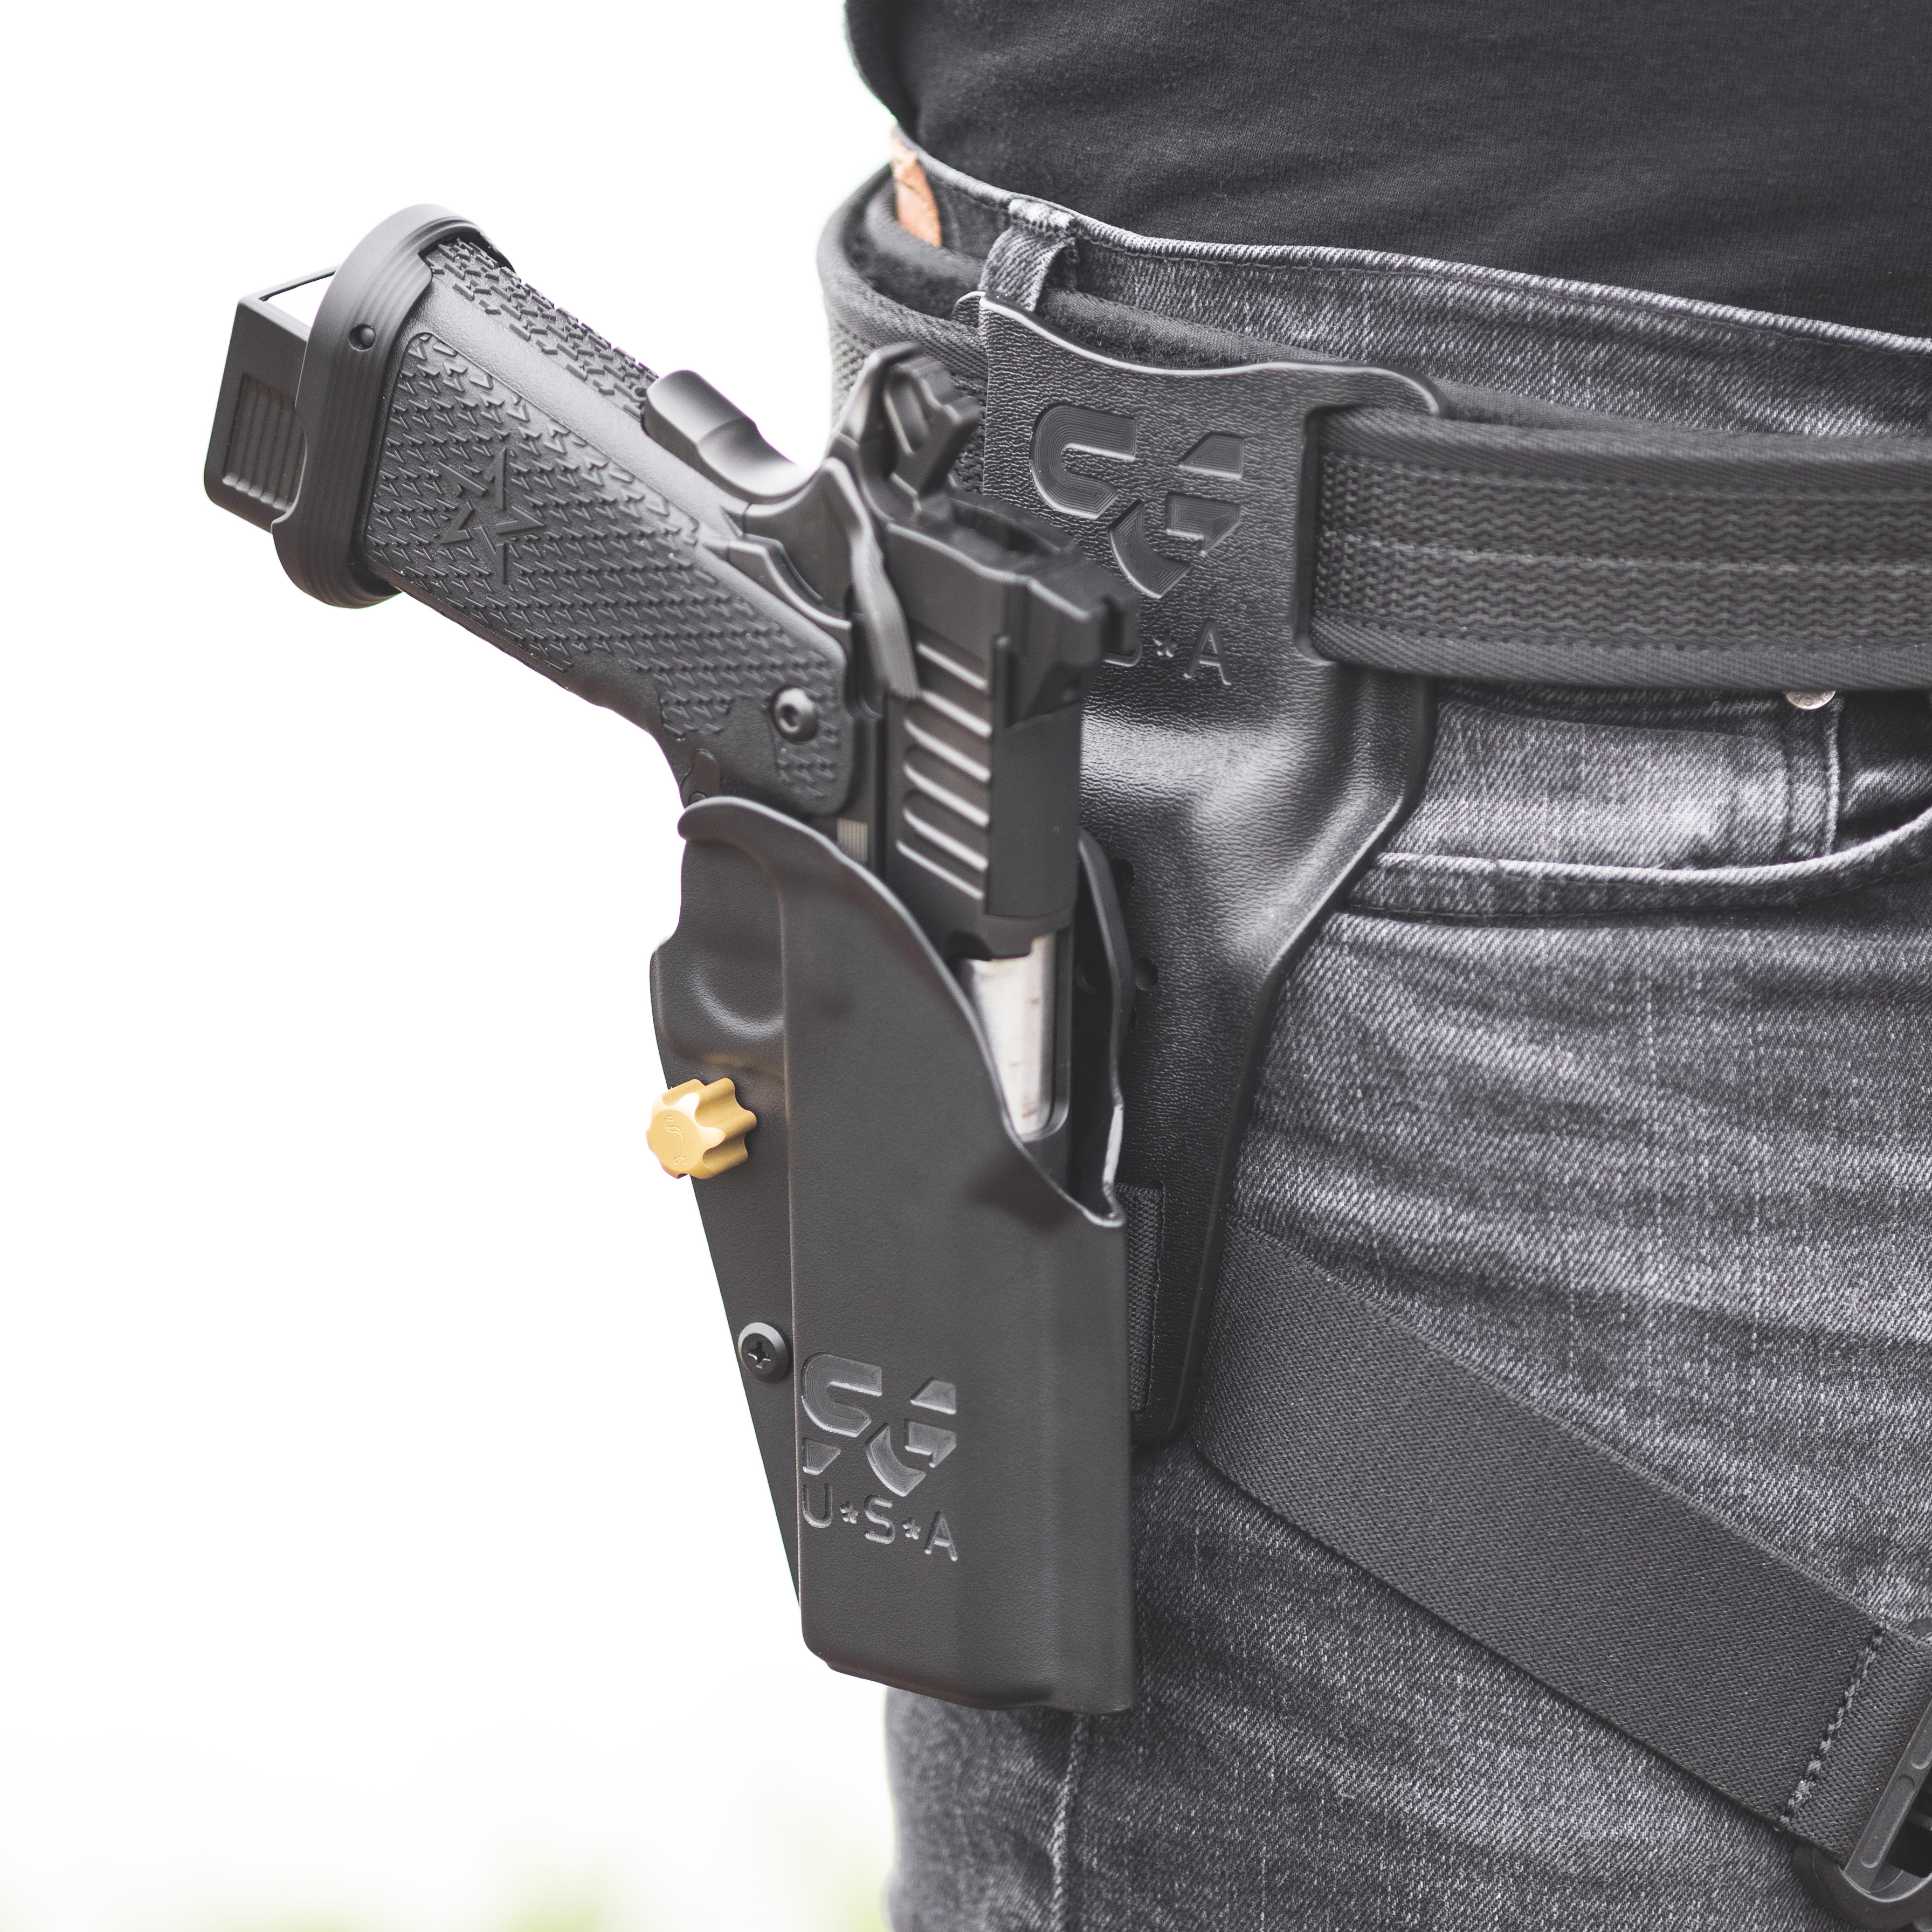 stealthgearusa-sg-x-competition-holster-2011-close-square-crop.jpg